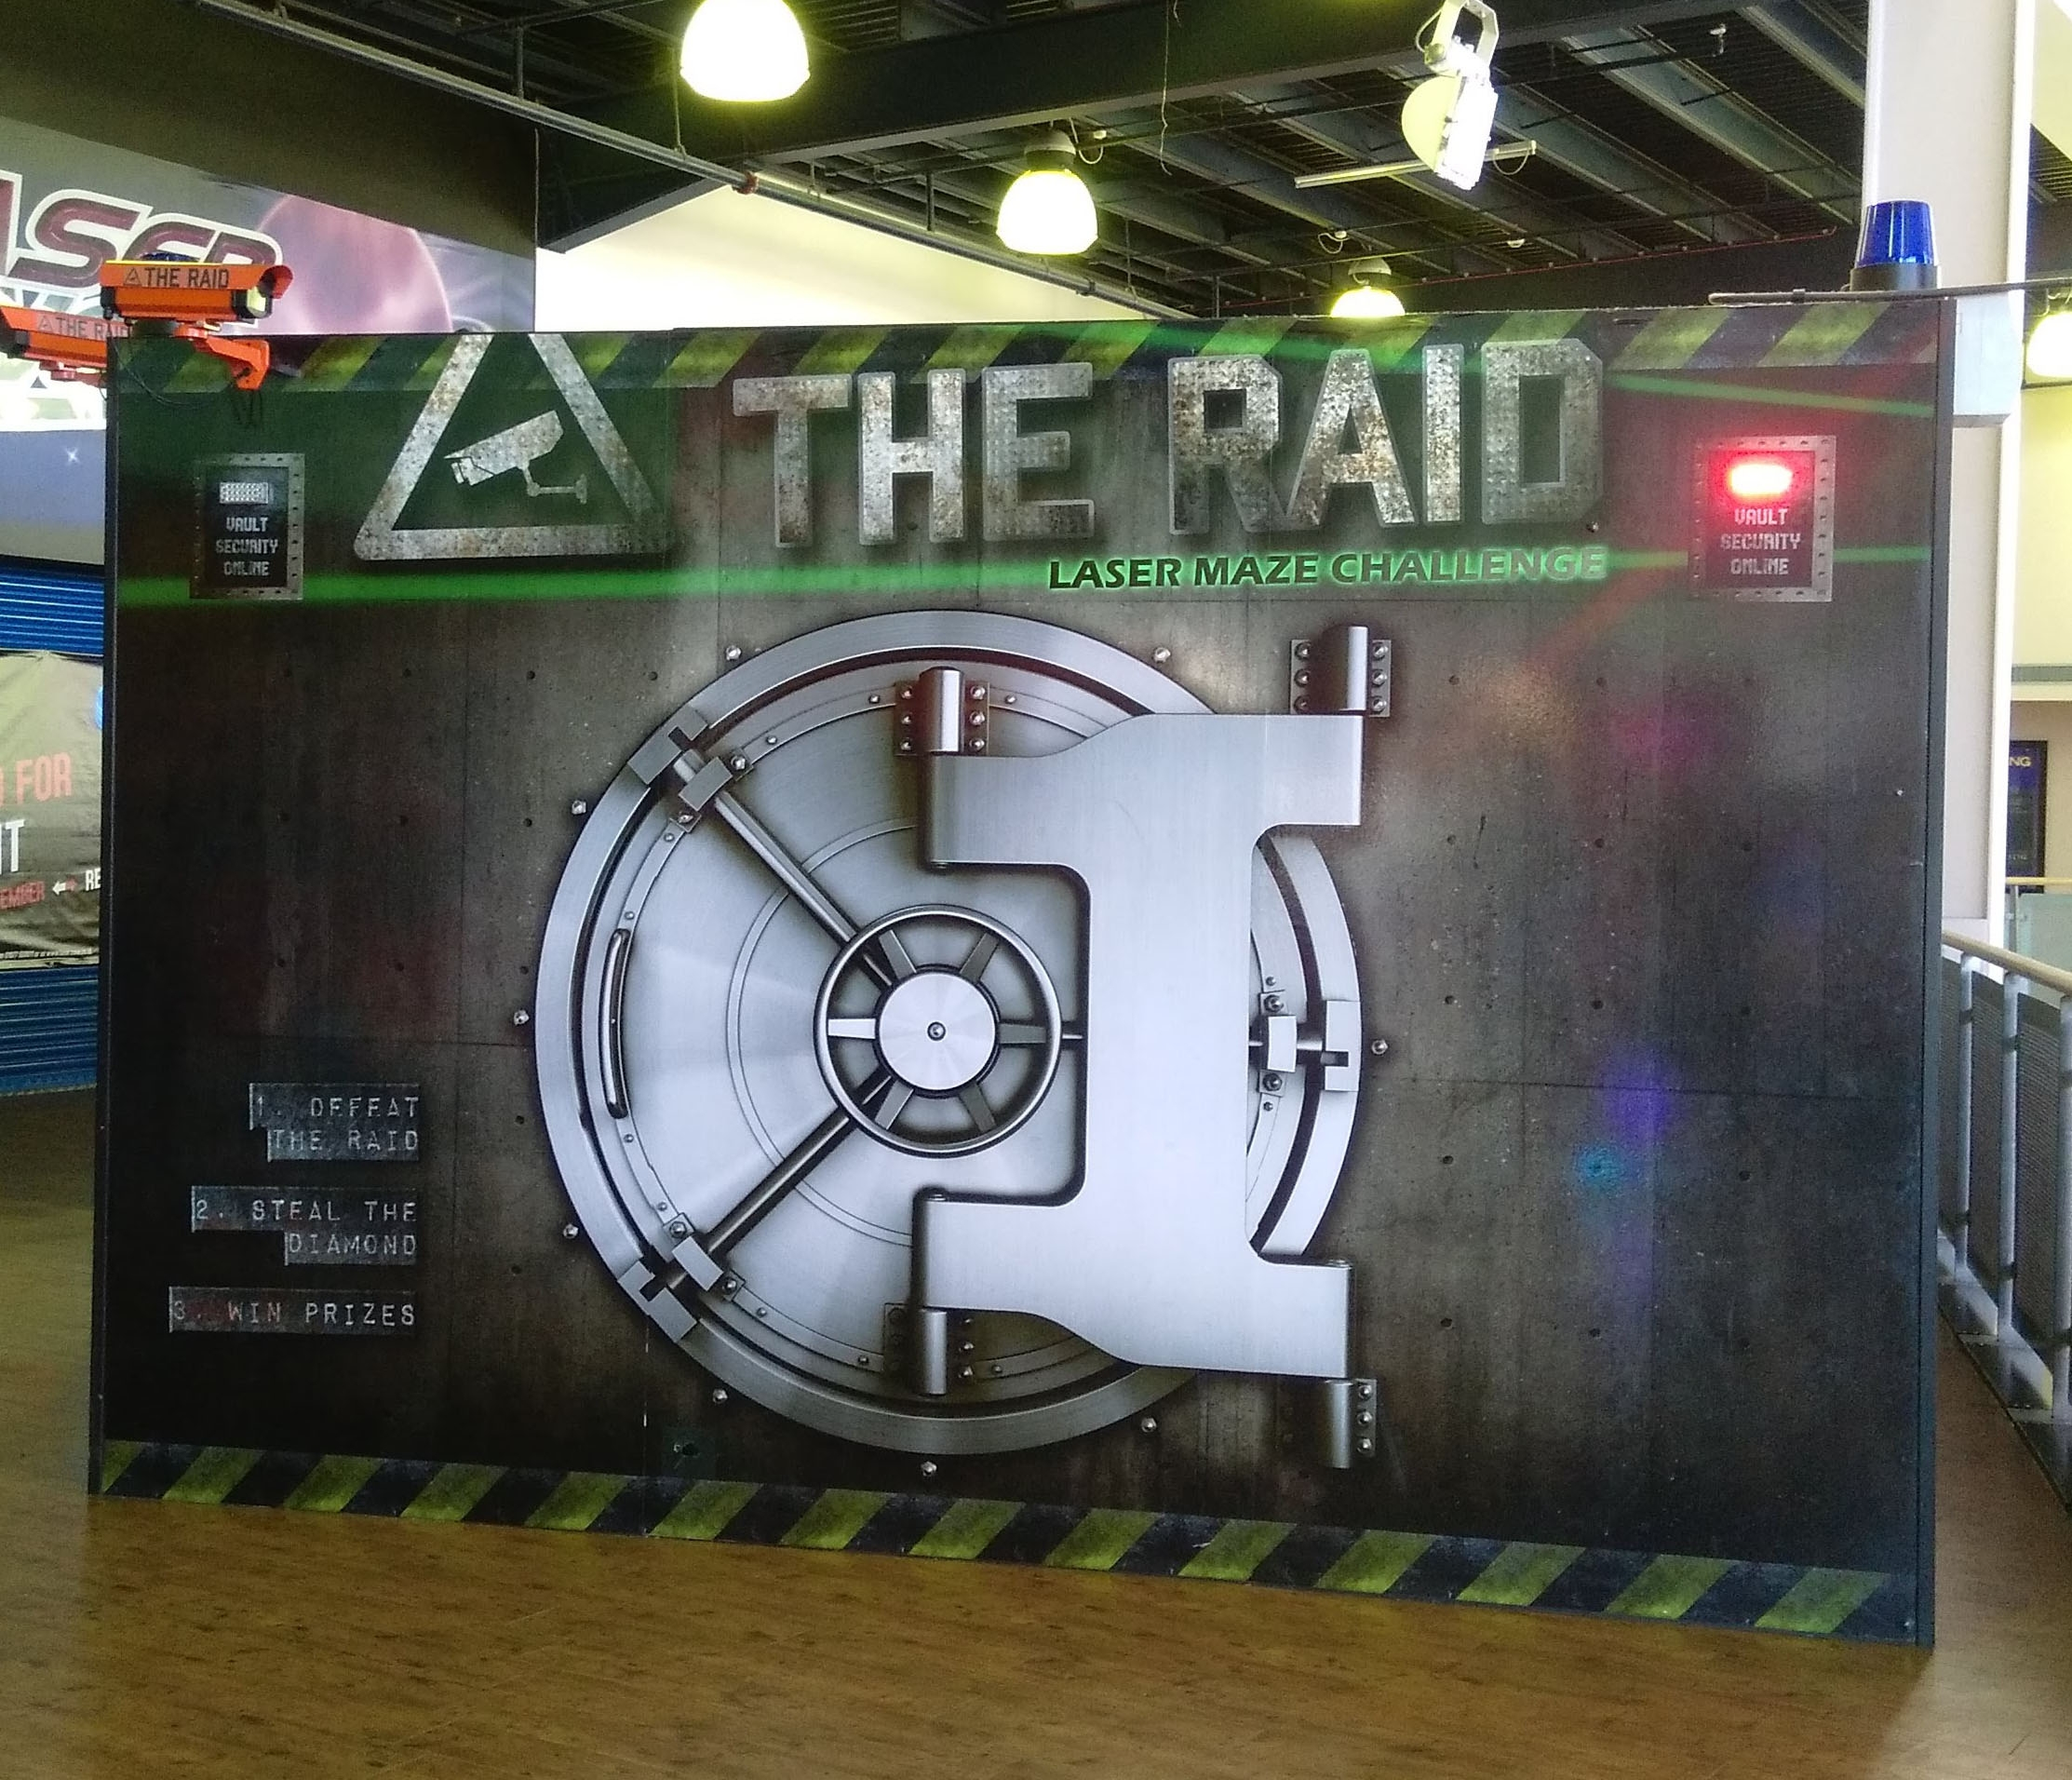 the raid at Xscape Castleford